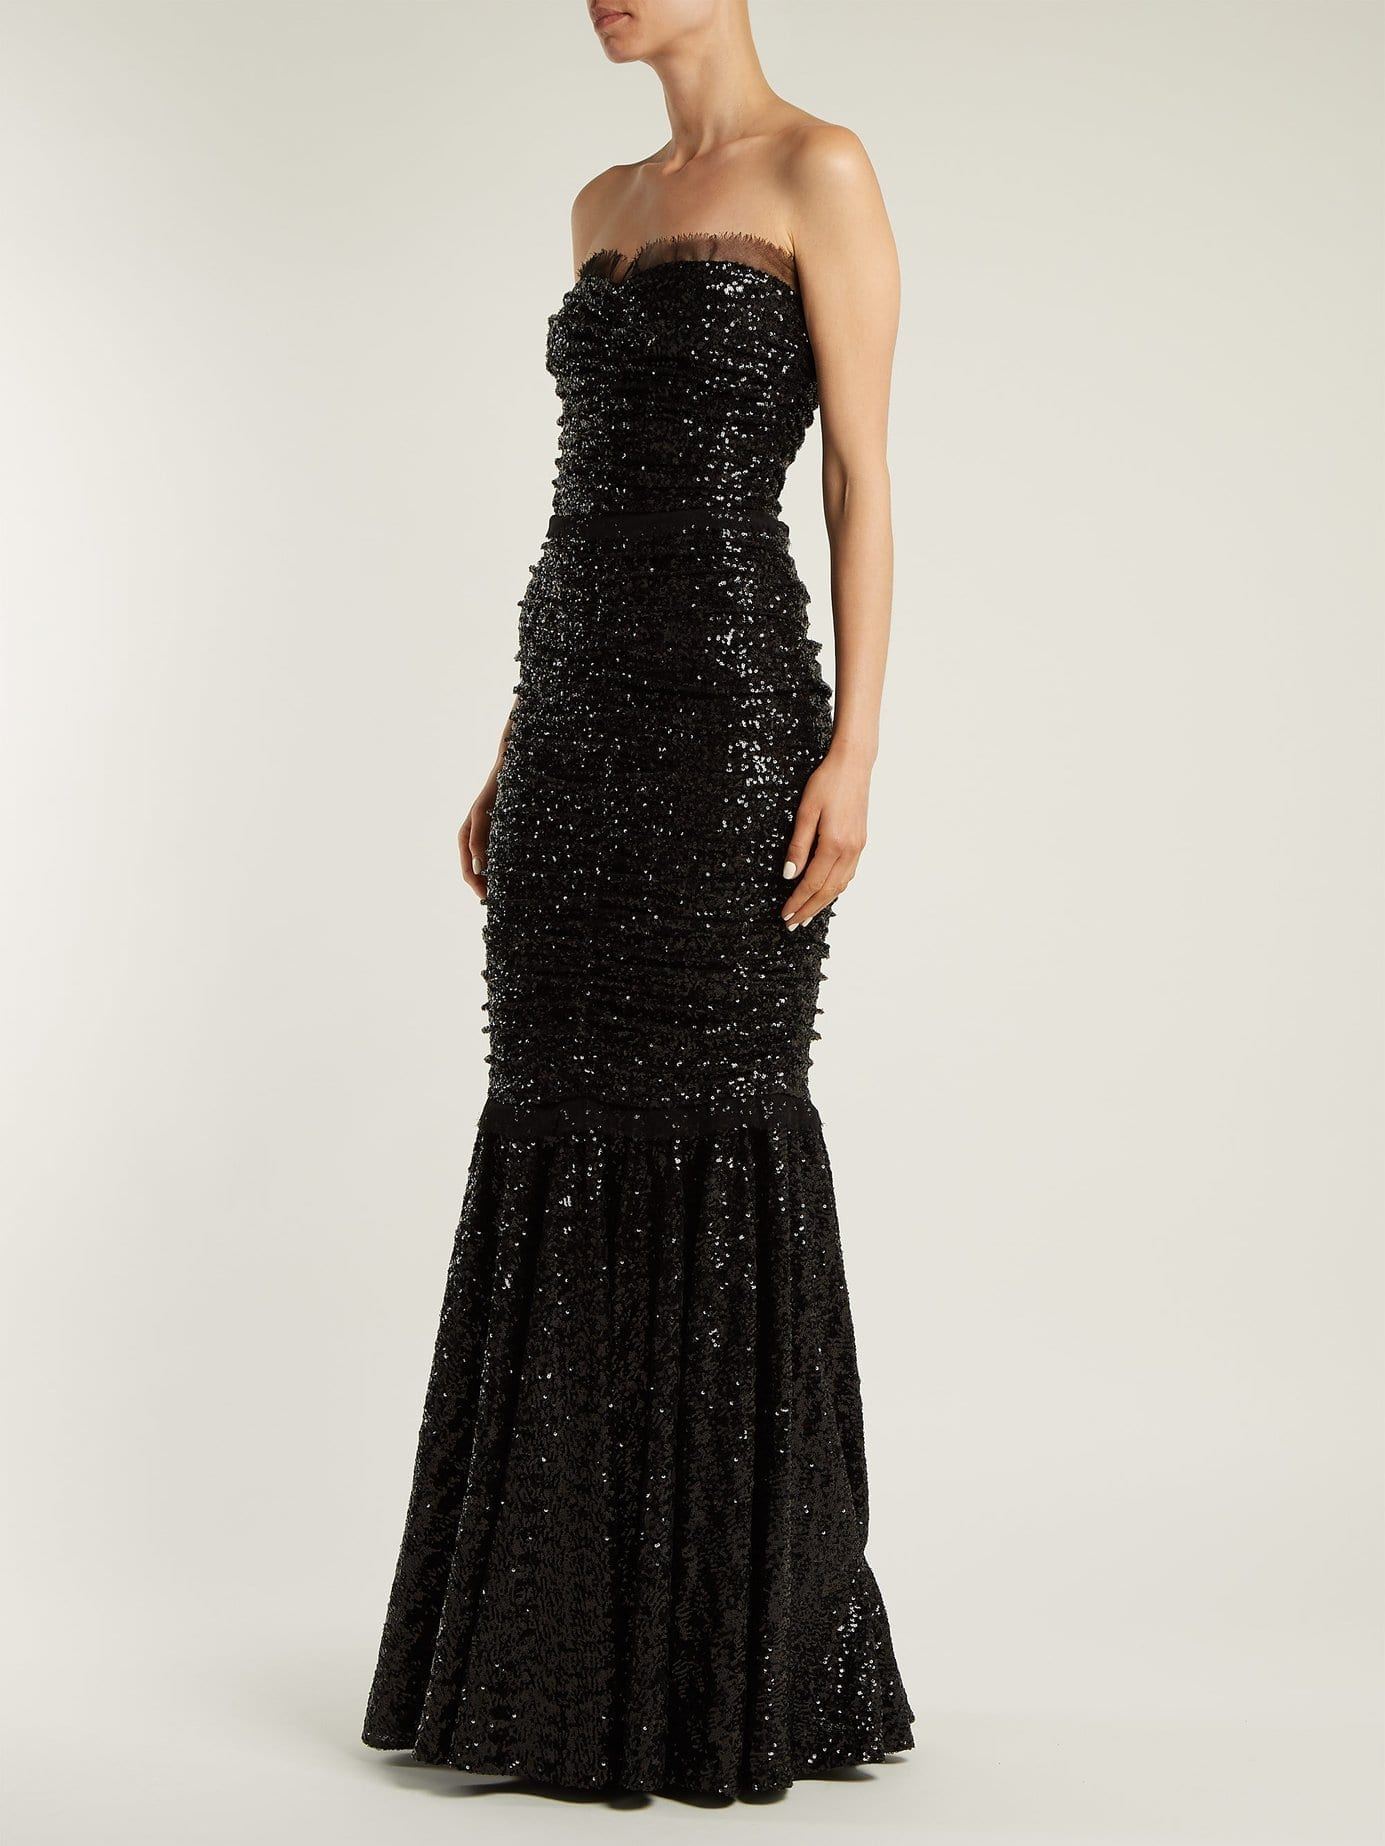 DOLCE & GABBANA Strapless Fishtail Sequin Embellished Black Gown ...